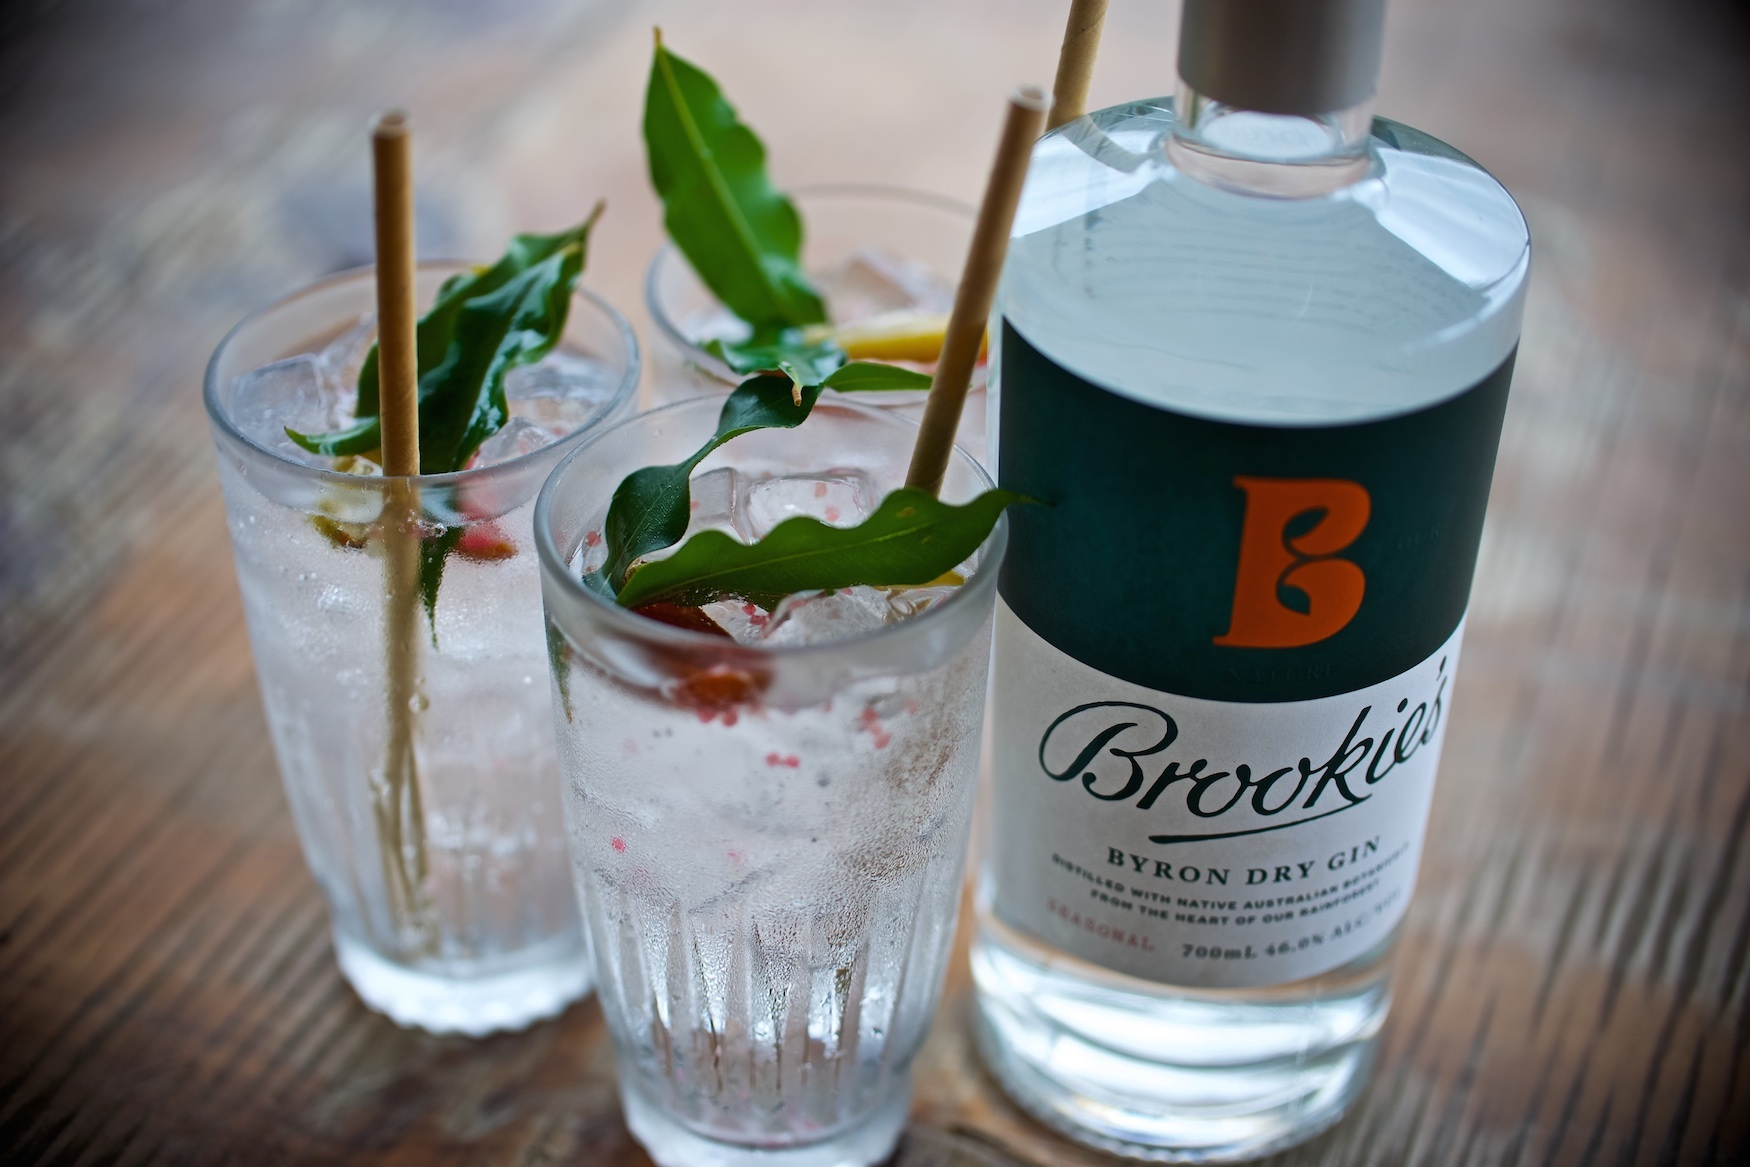 Brookie's Gin This Magnificent Life